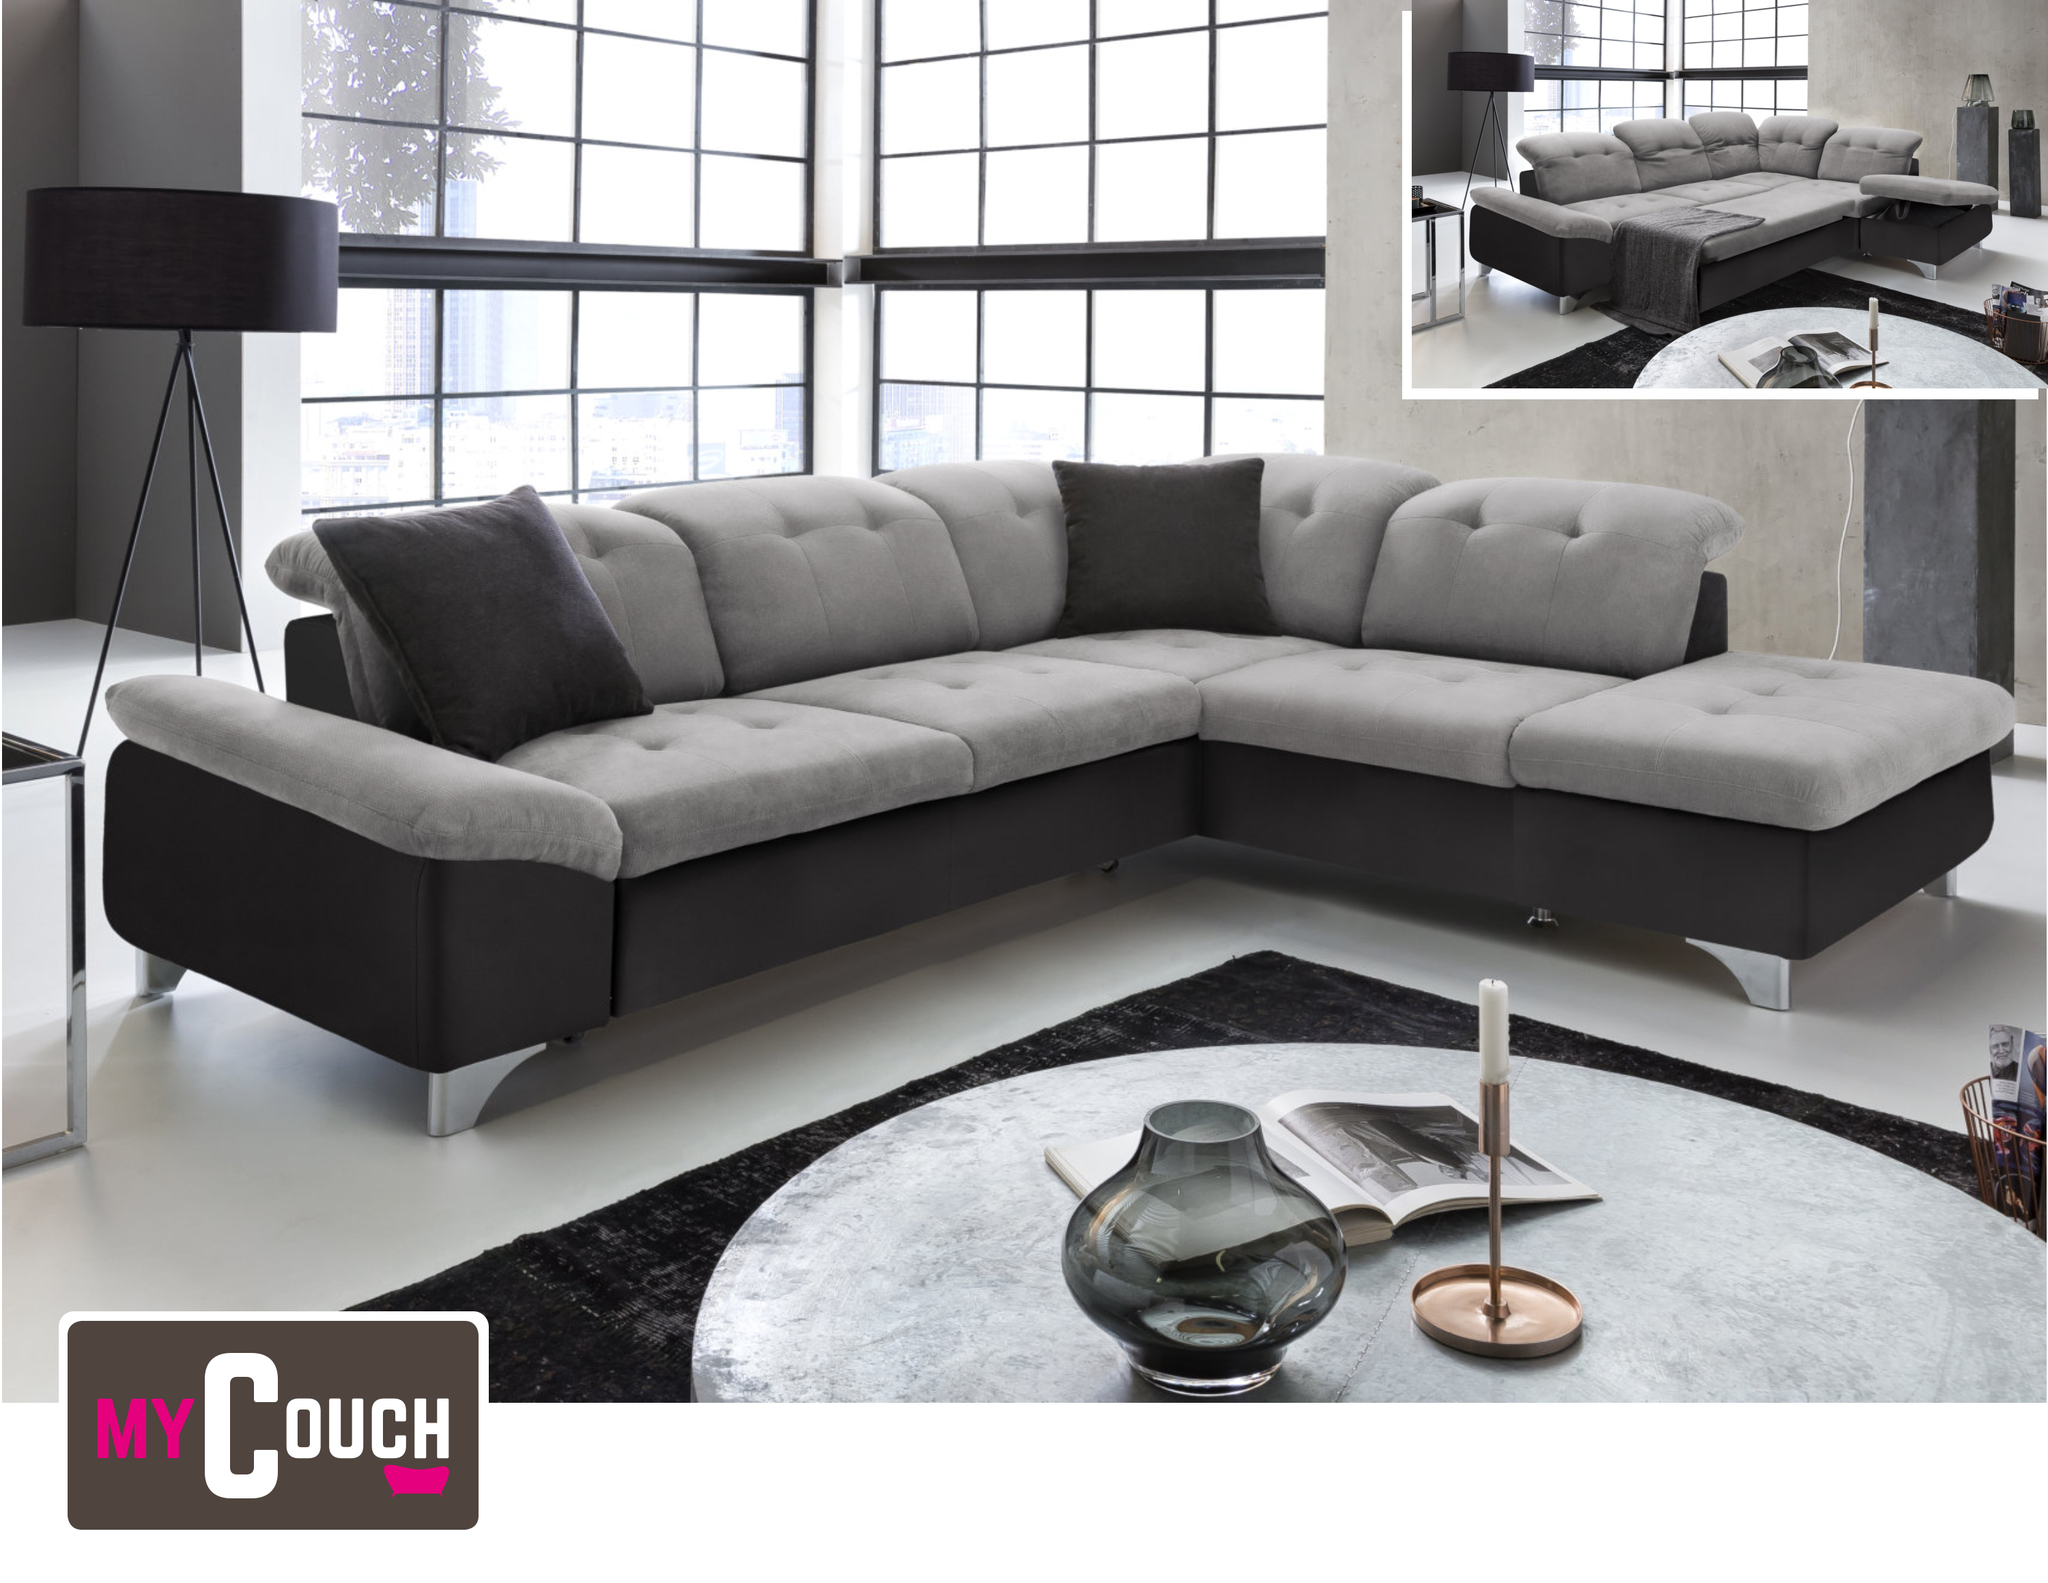 sofa online bestellen best musterring sofa online kaufen. Black Bedroom Furniture Sets. Home Design Ideas